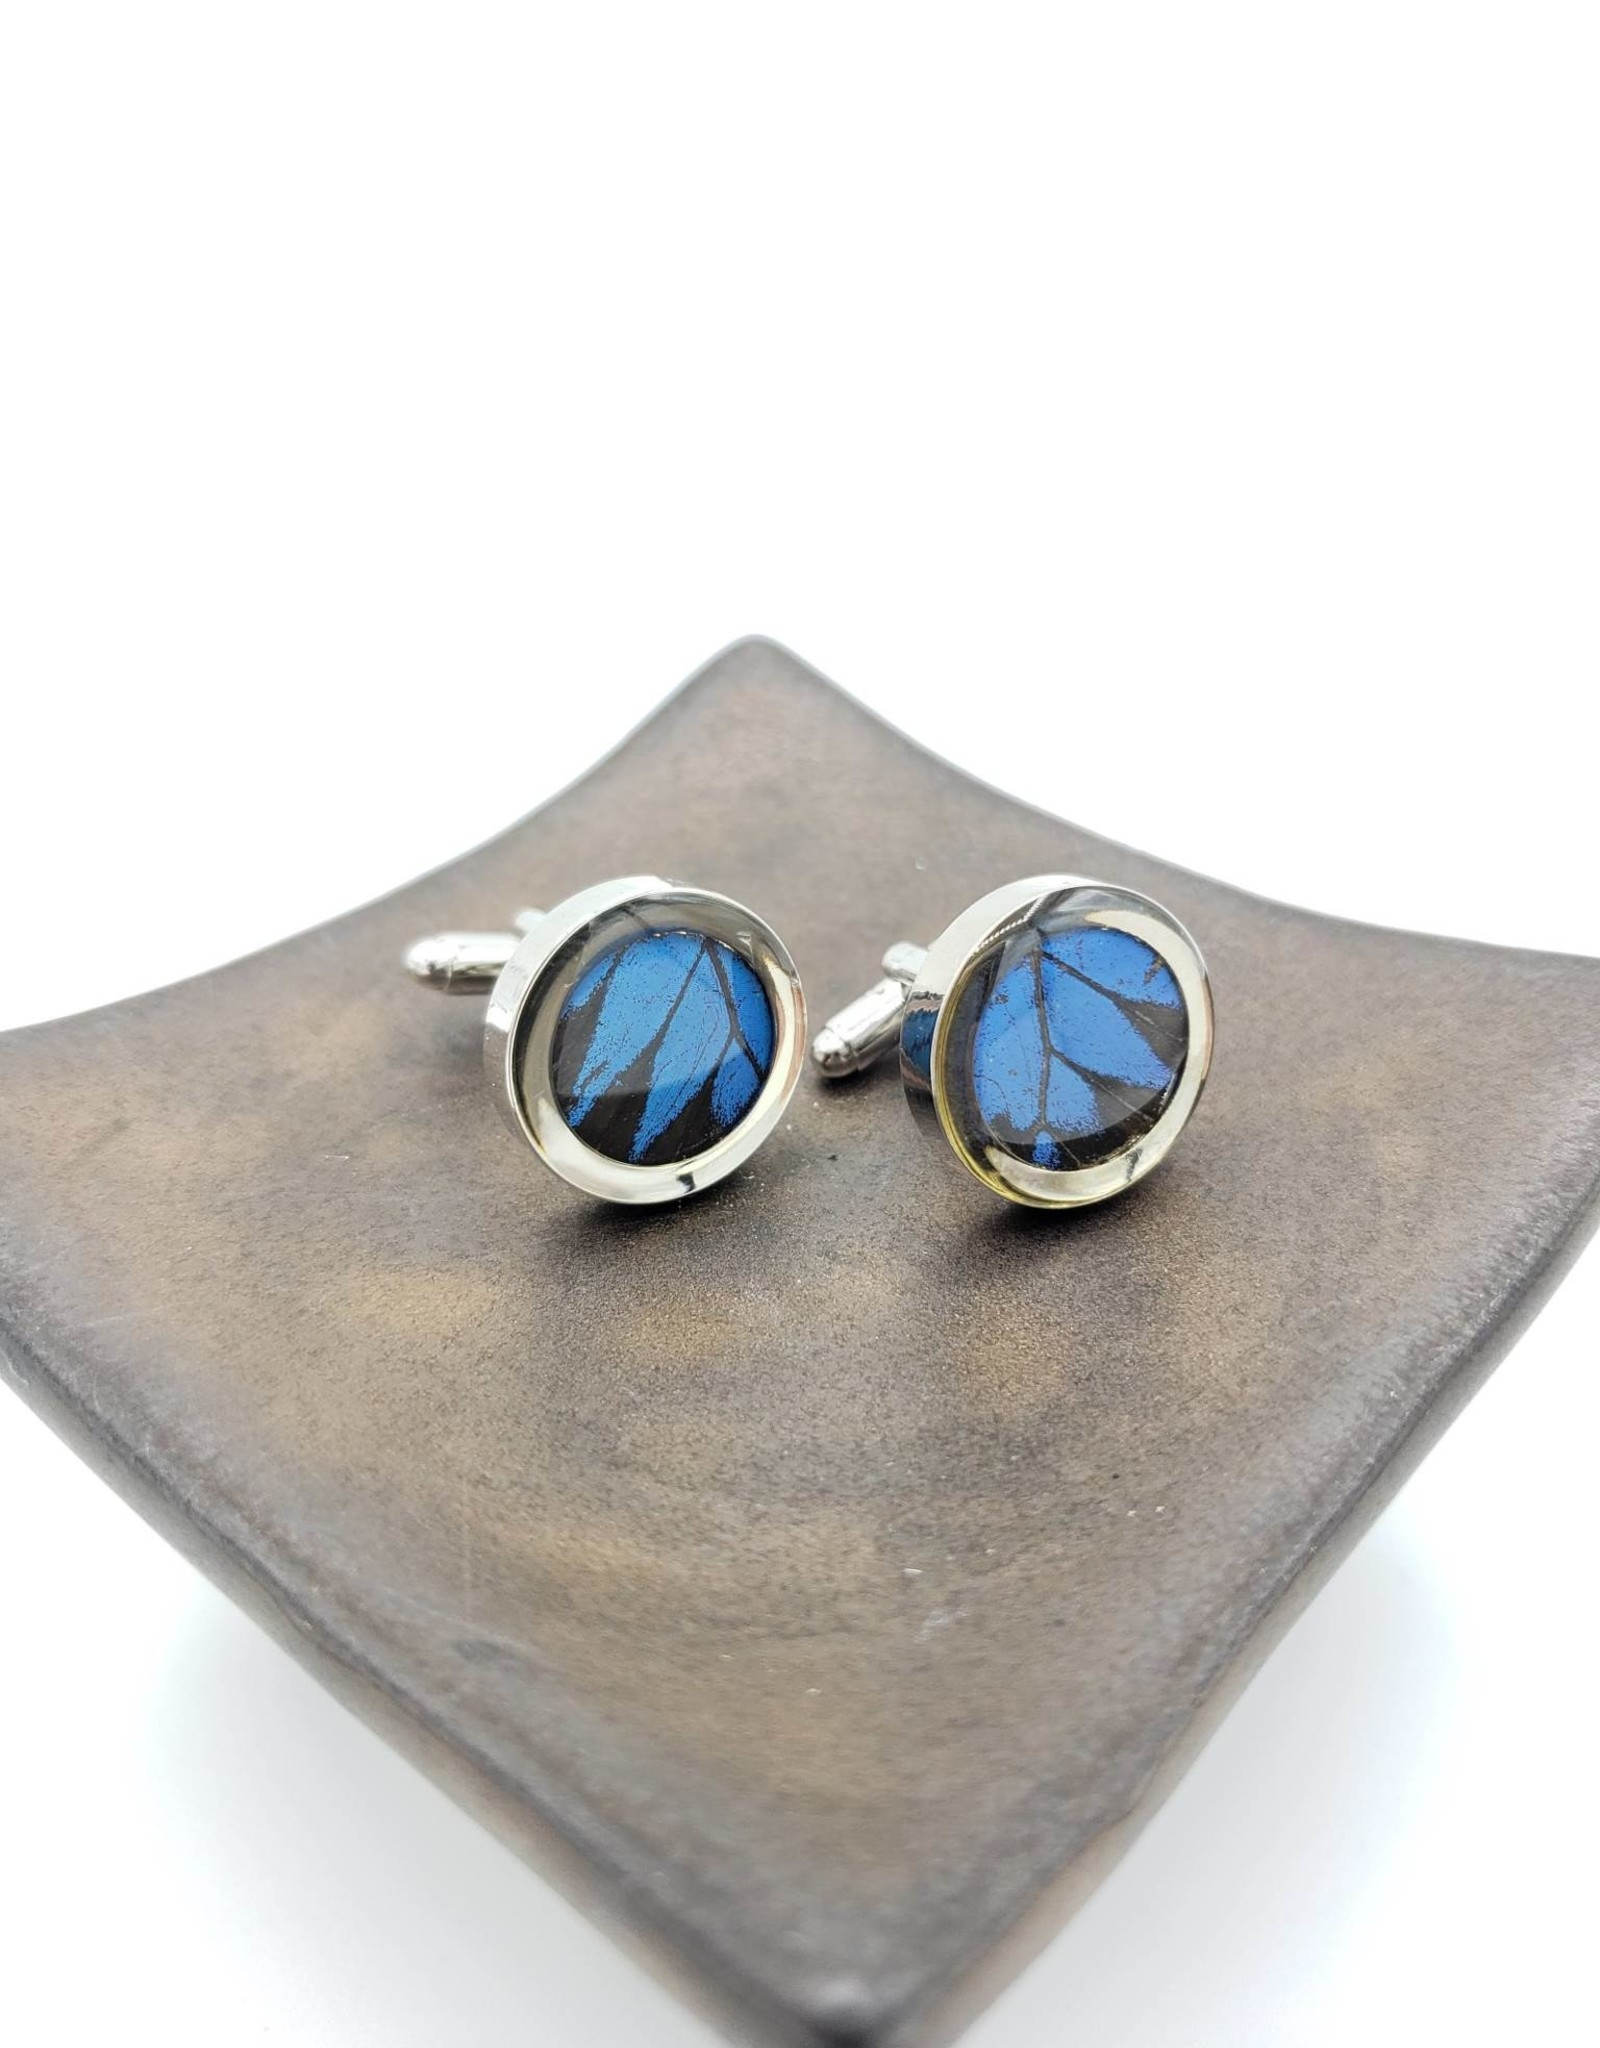 Asana Natural Arts Stainless Steel Butterfly Wing Cufflinks - Papilio Ulysses